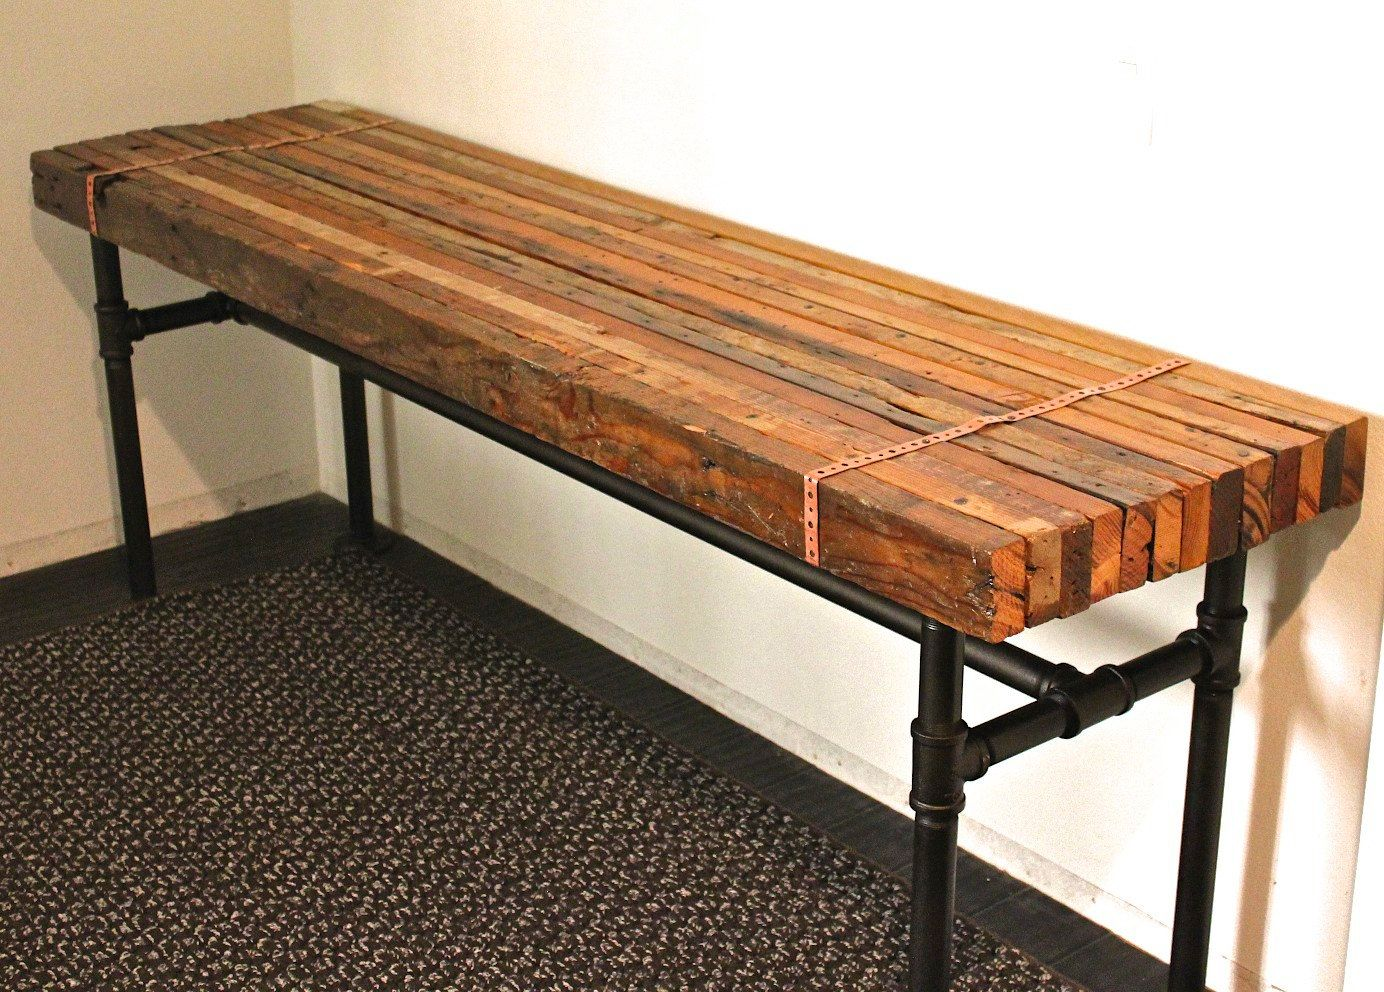 Reclaimed Wood Desk 100 Handmade Custom by zacharyhopkins